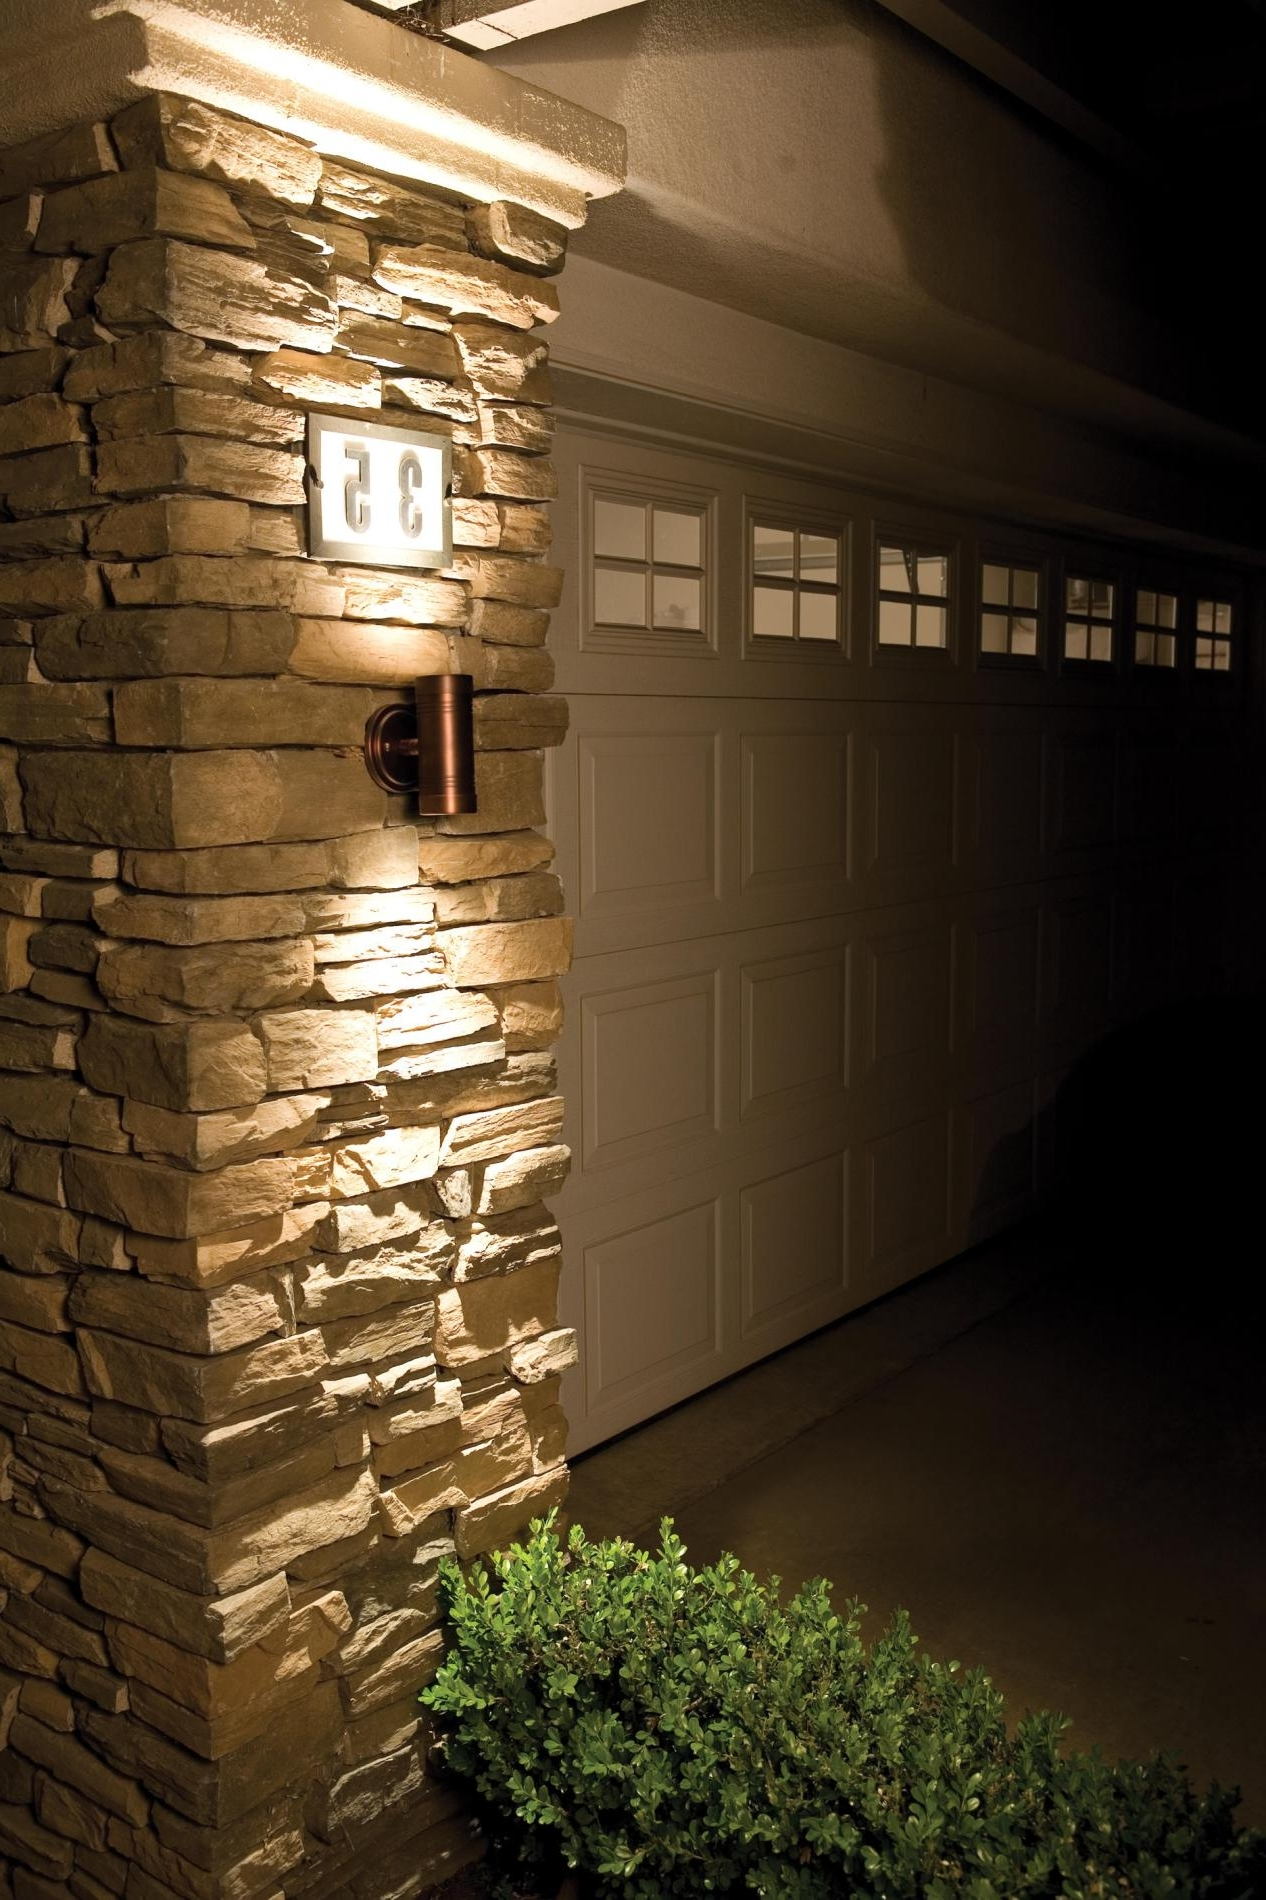 Exterior Wall Stone Cladding House Design With Outdoor Led Wall Within Well Known Outdoor Wall Lights For Houses (Gallery 4 of 20)